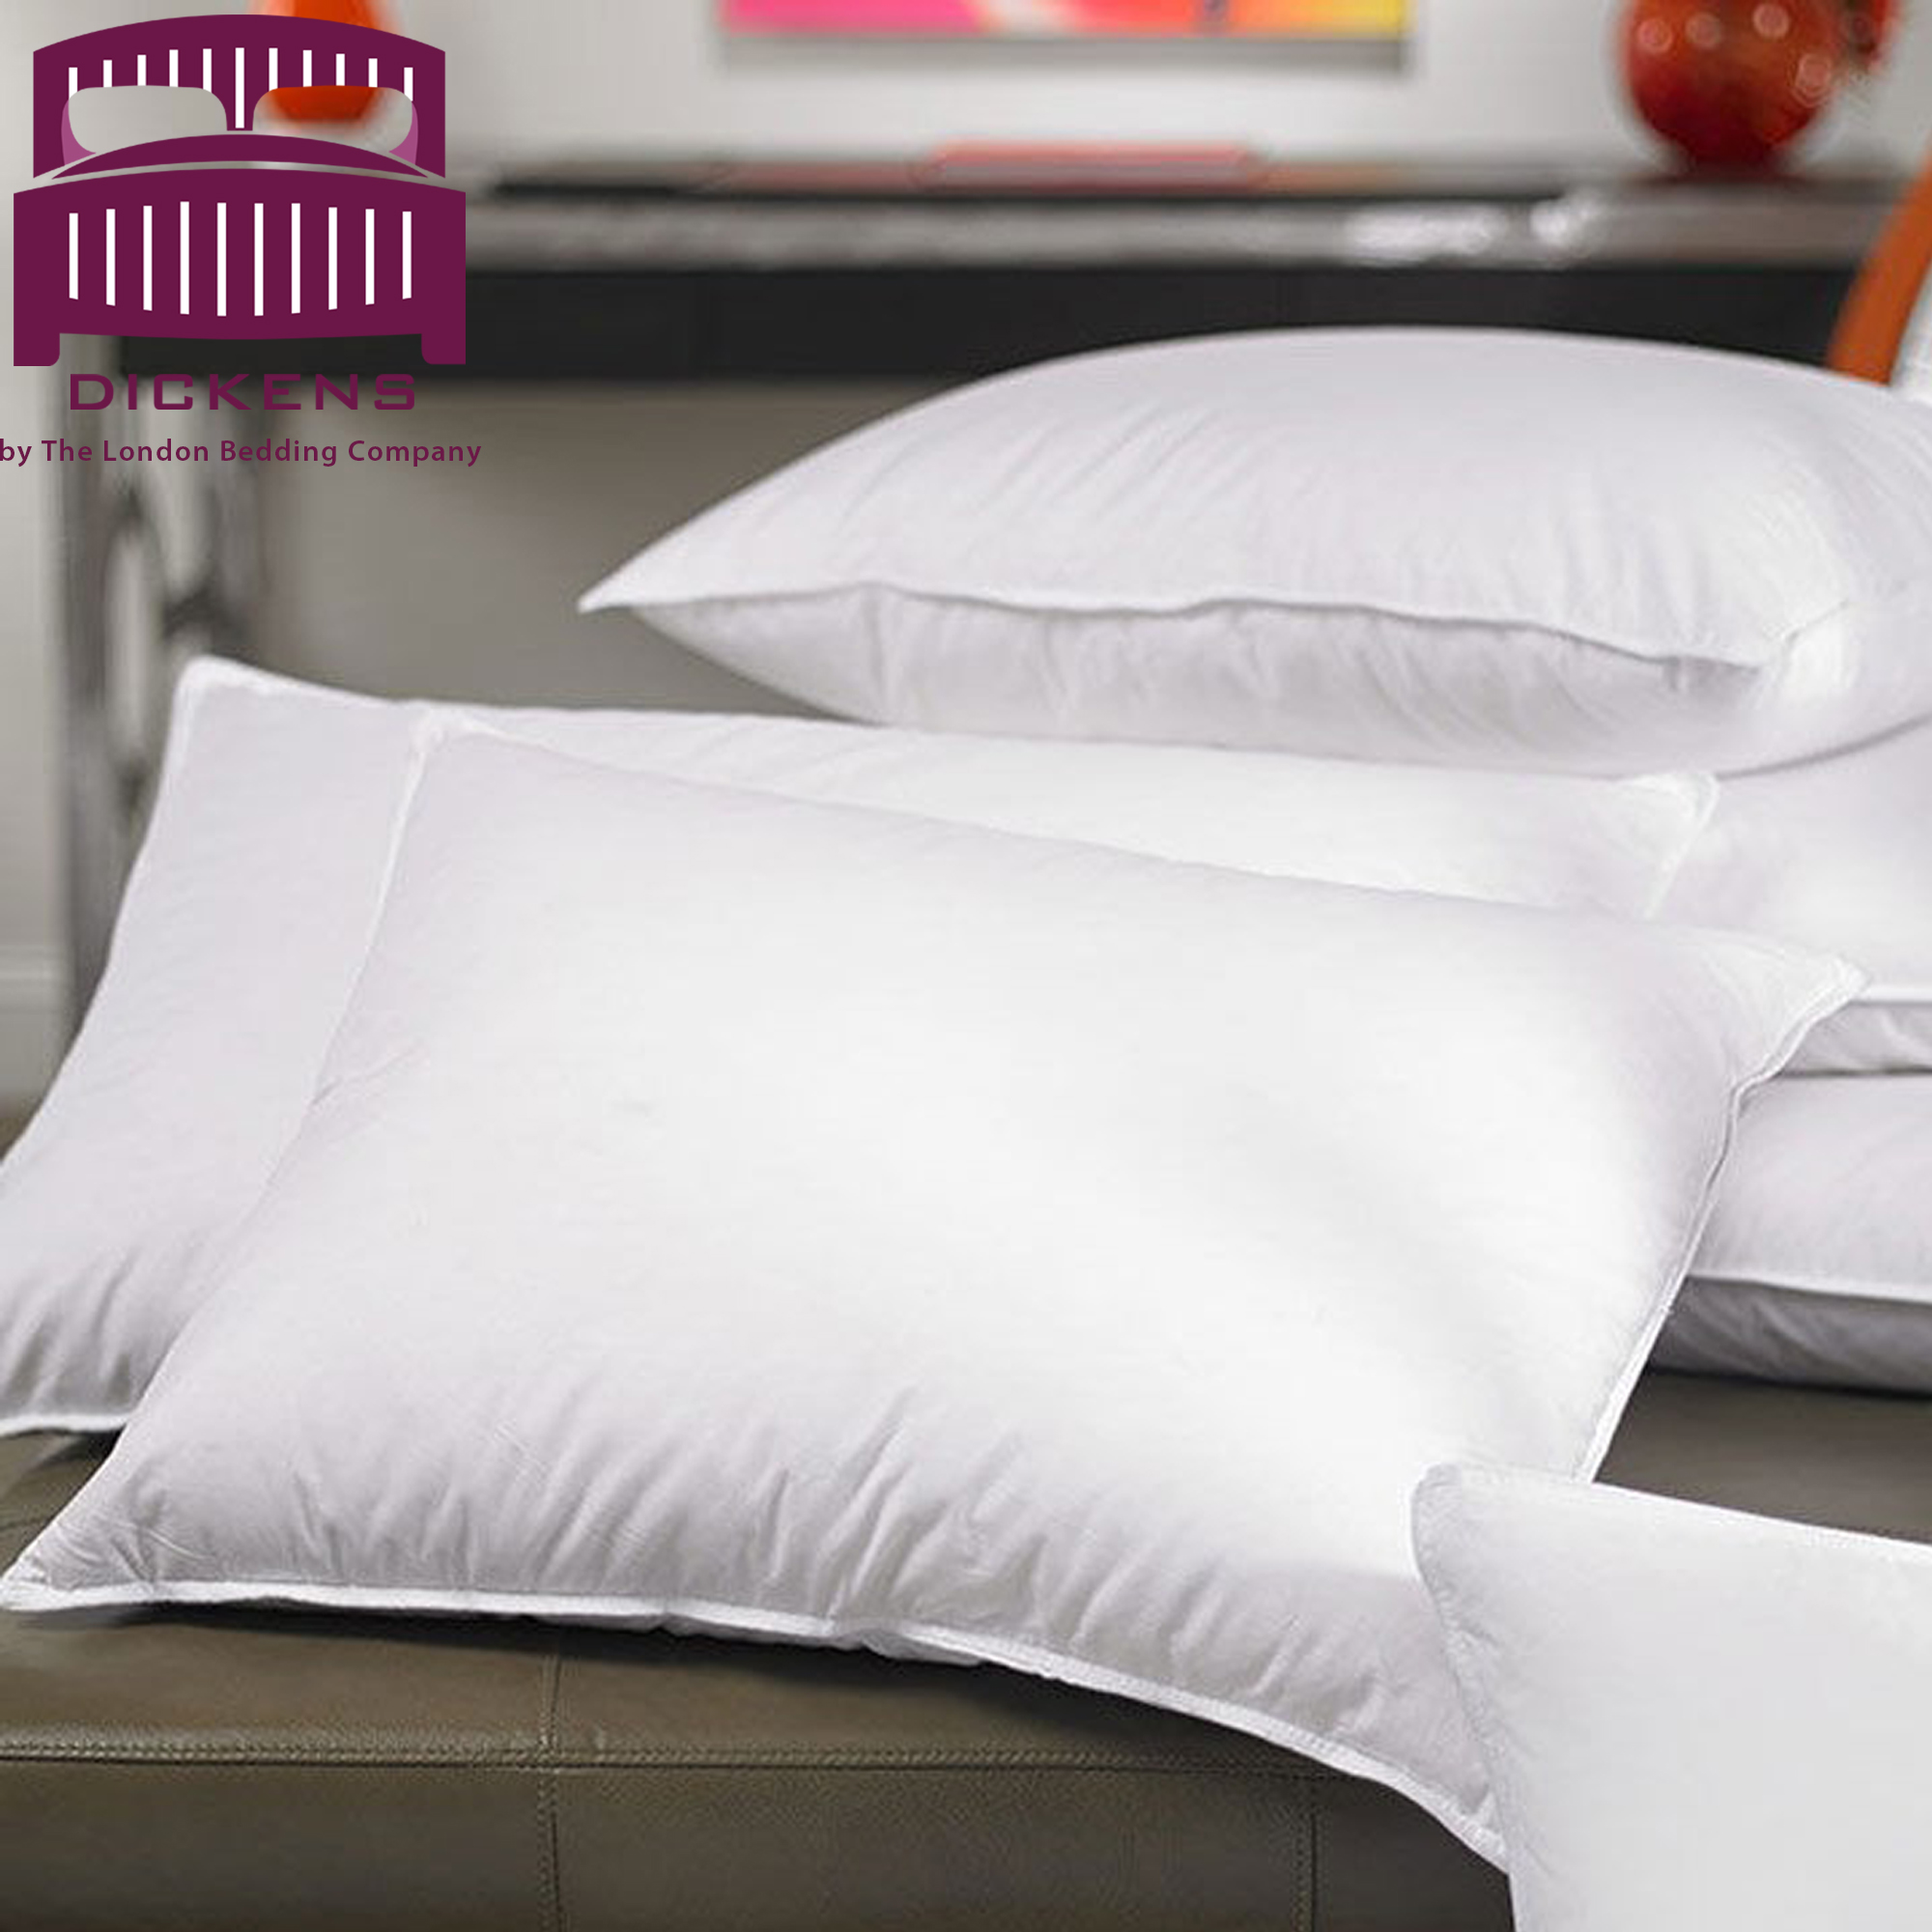 bedding best image guides pacific of pillows np feather blog prod products down pillow gift coast featherbest